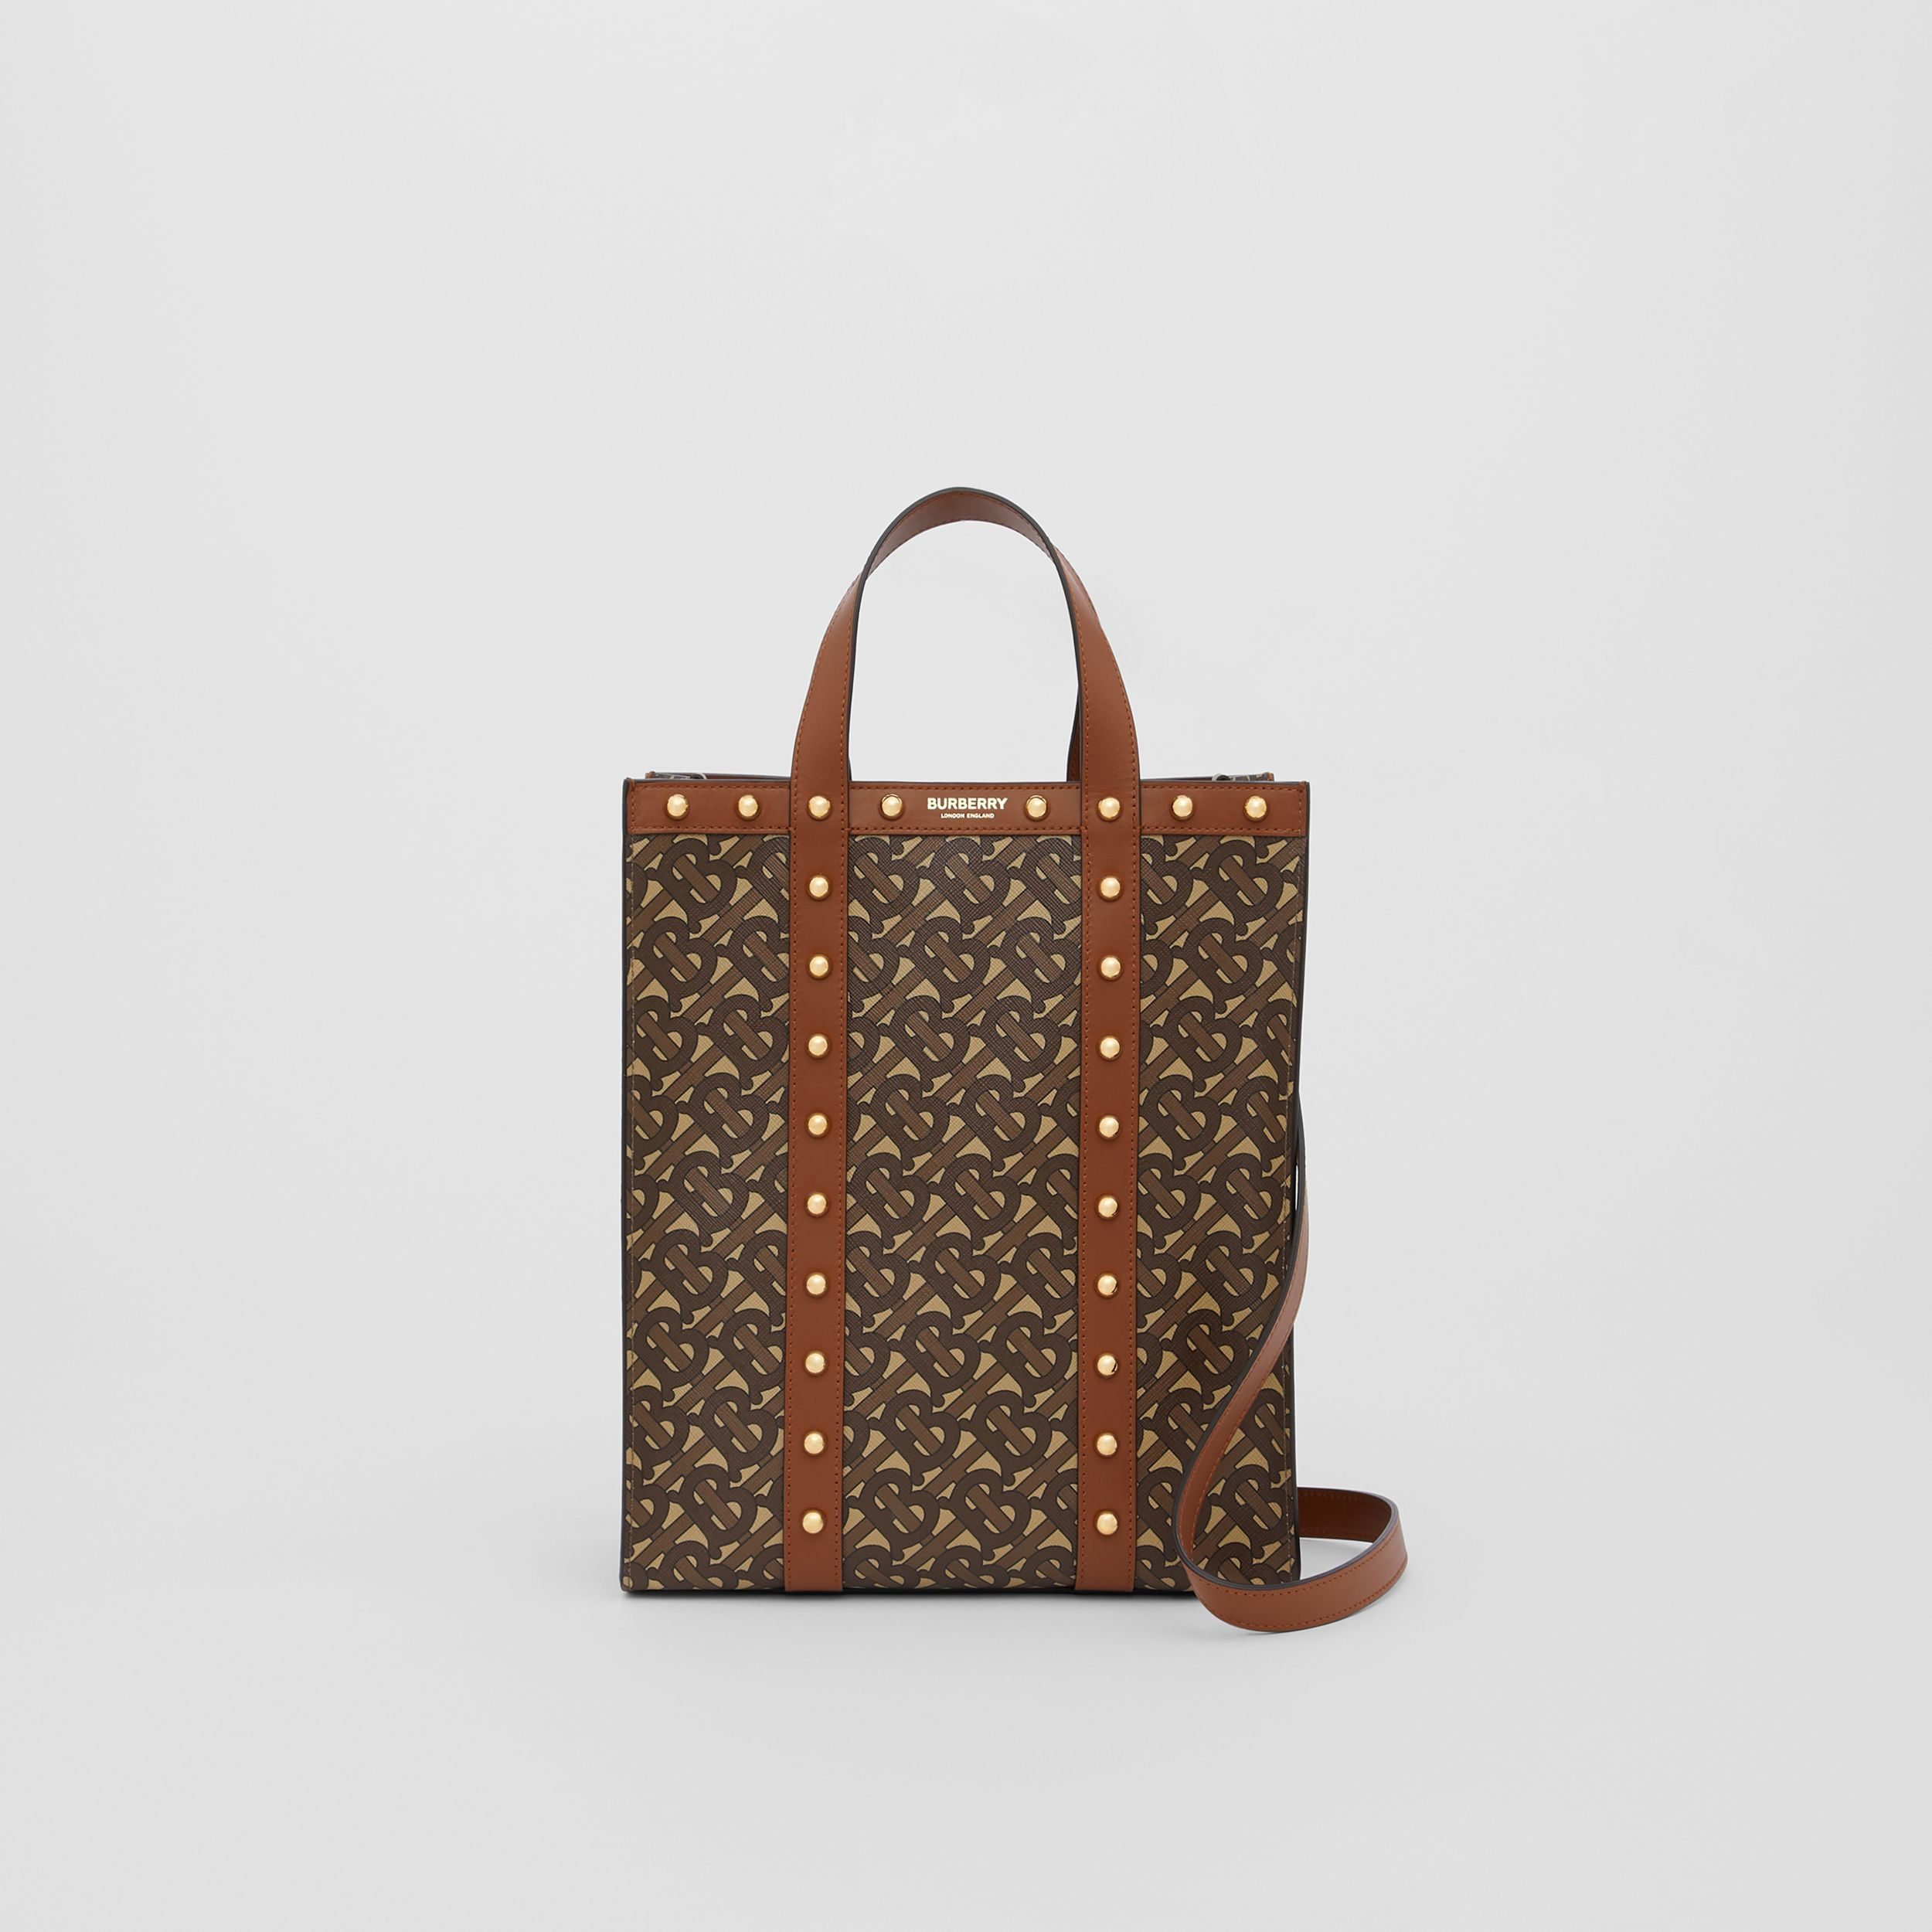 Small Monogram Print E-canvas Portrait Tote Bag in Tan - Women | Burberry - 1